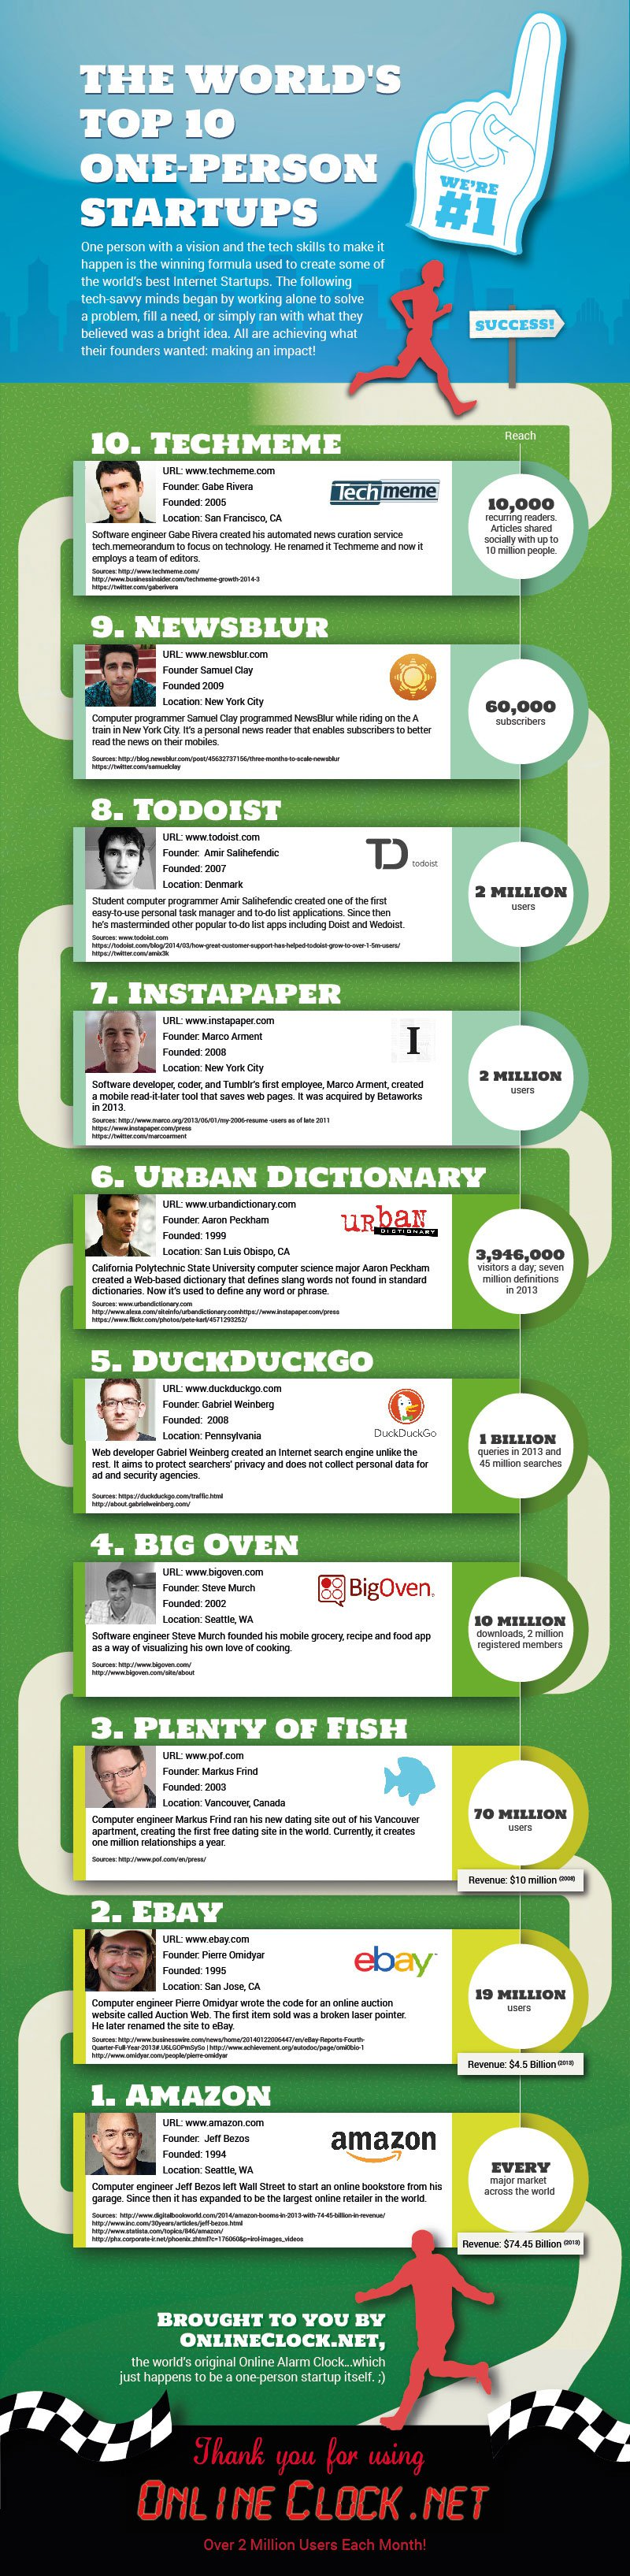 top-10-one-person-startups-onlineclock-web